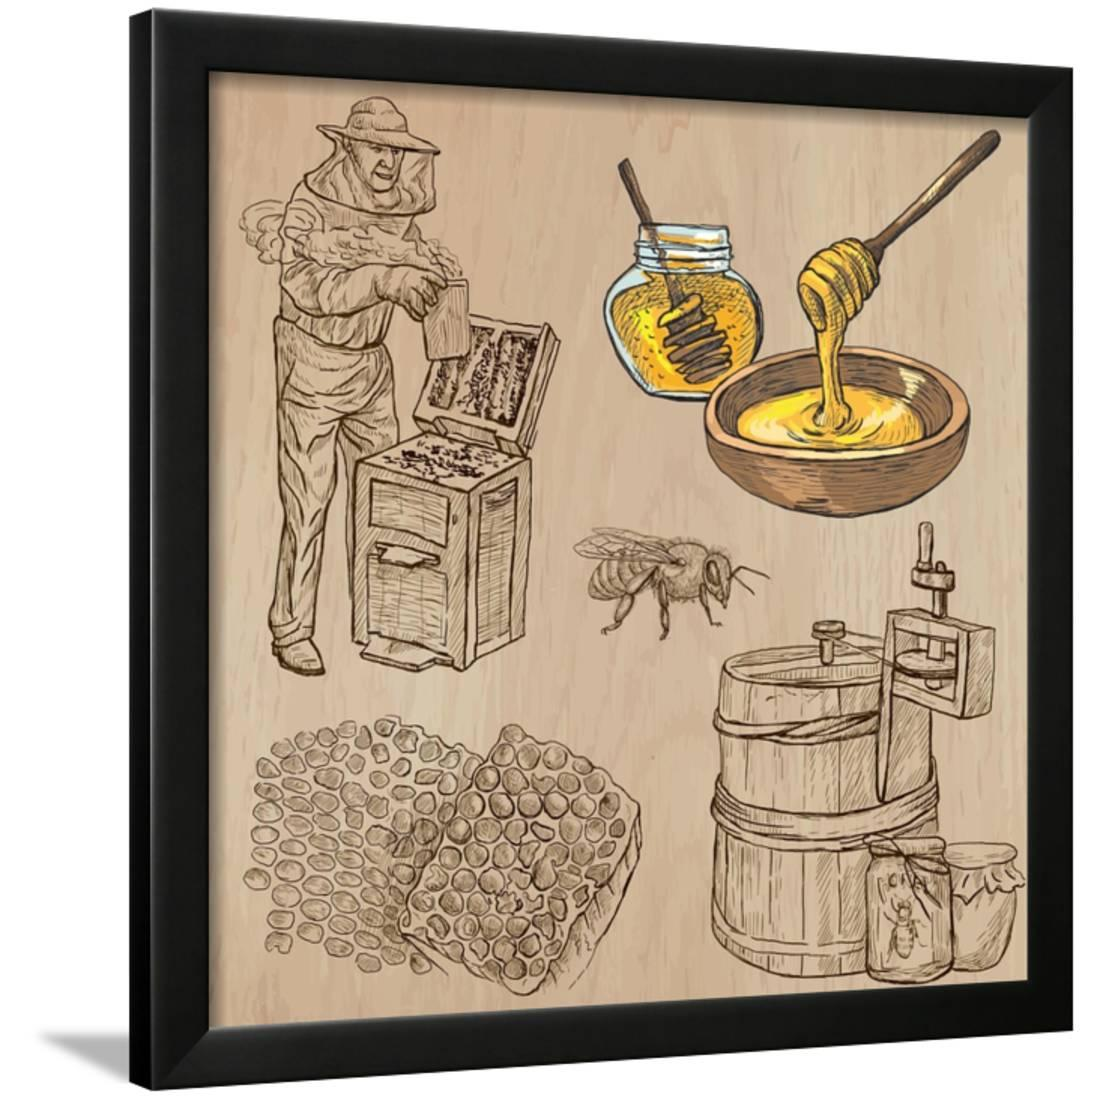 Bees, Beekeeping, and Honey Framed Print Wall Art By KUCO